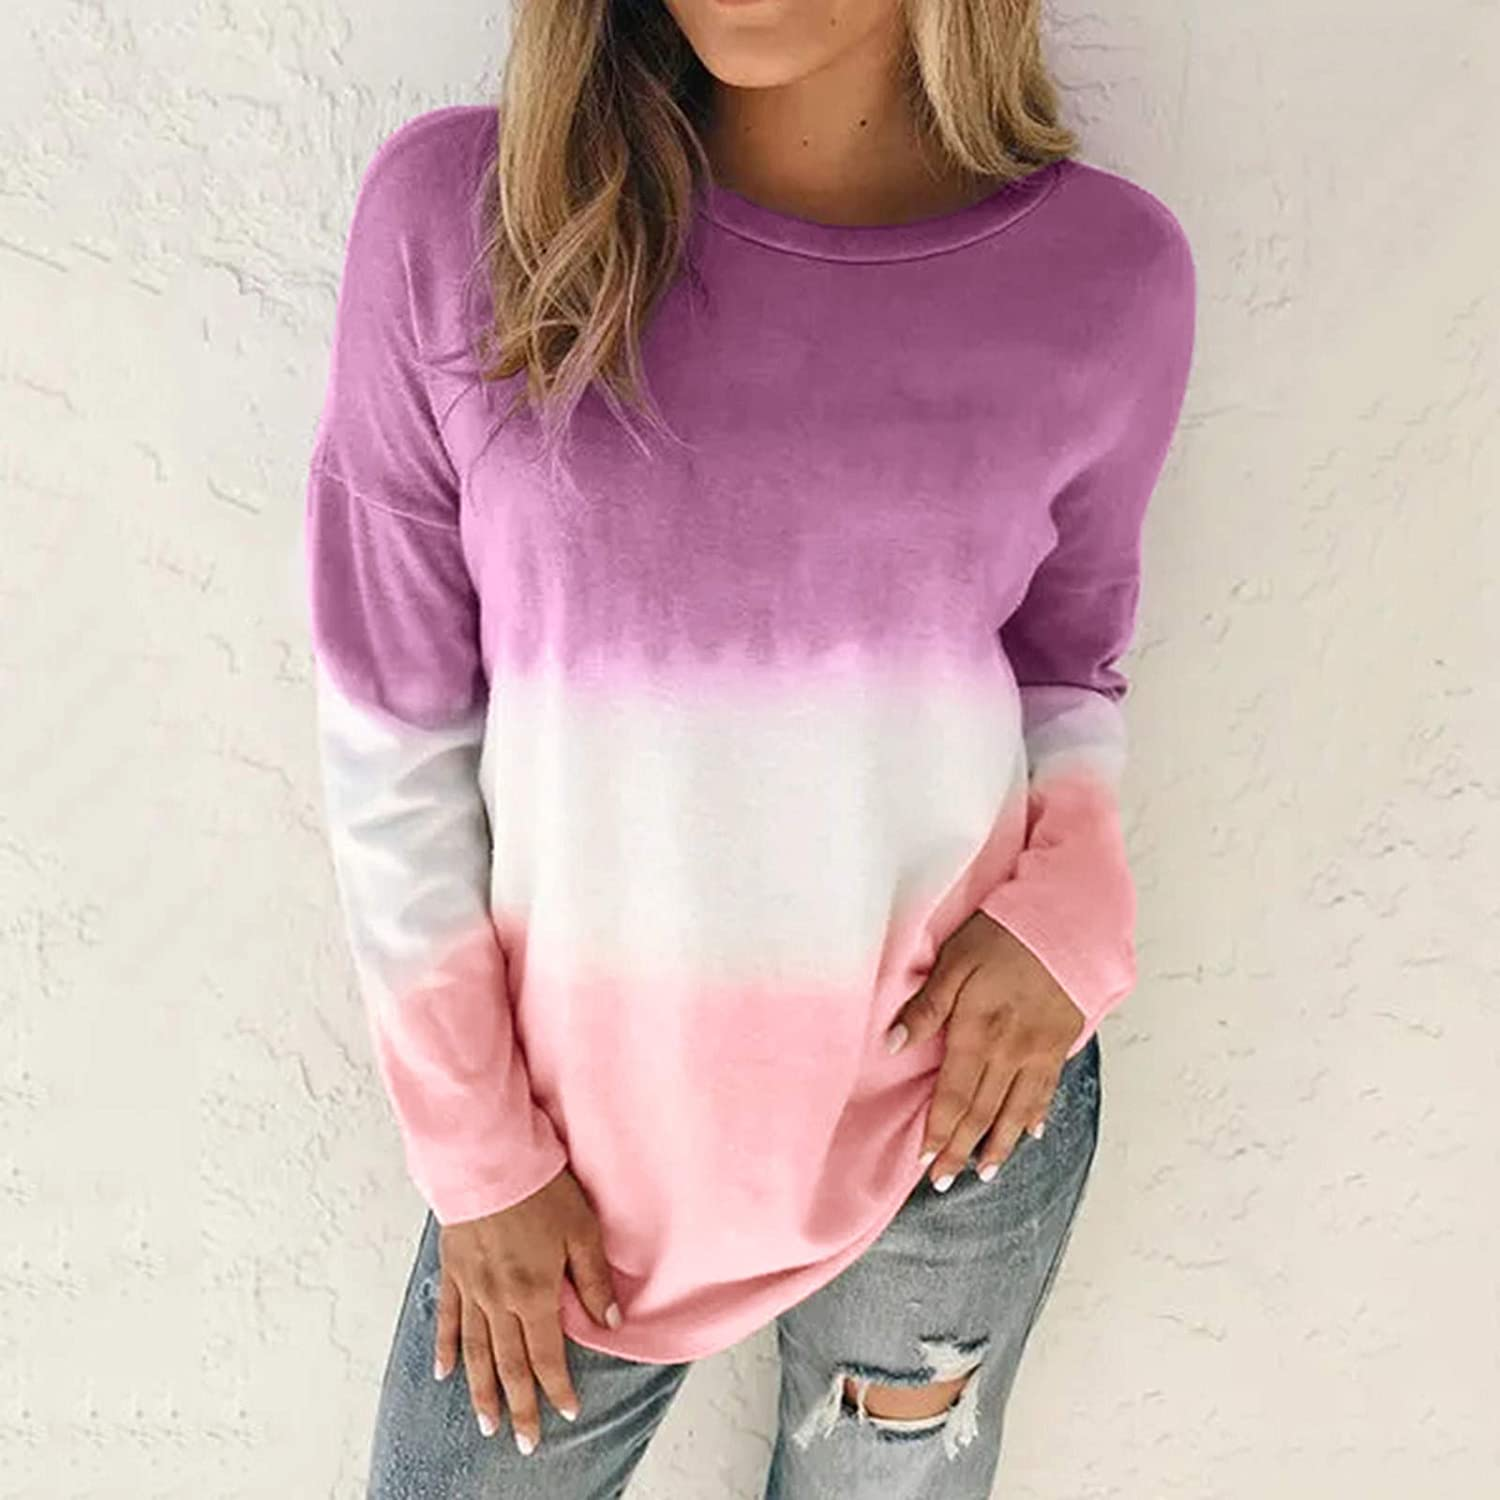 AODONG Hoodies for Women Long Sleeves Tie Dye Color Block Casual Sweatshirts Pullover Tops Blouse